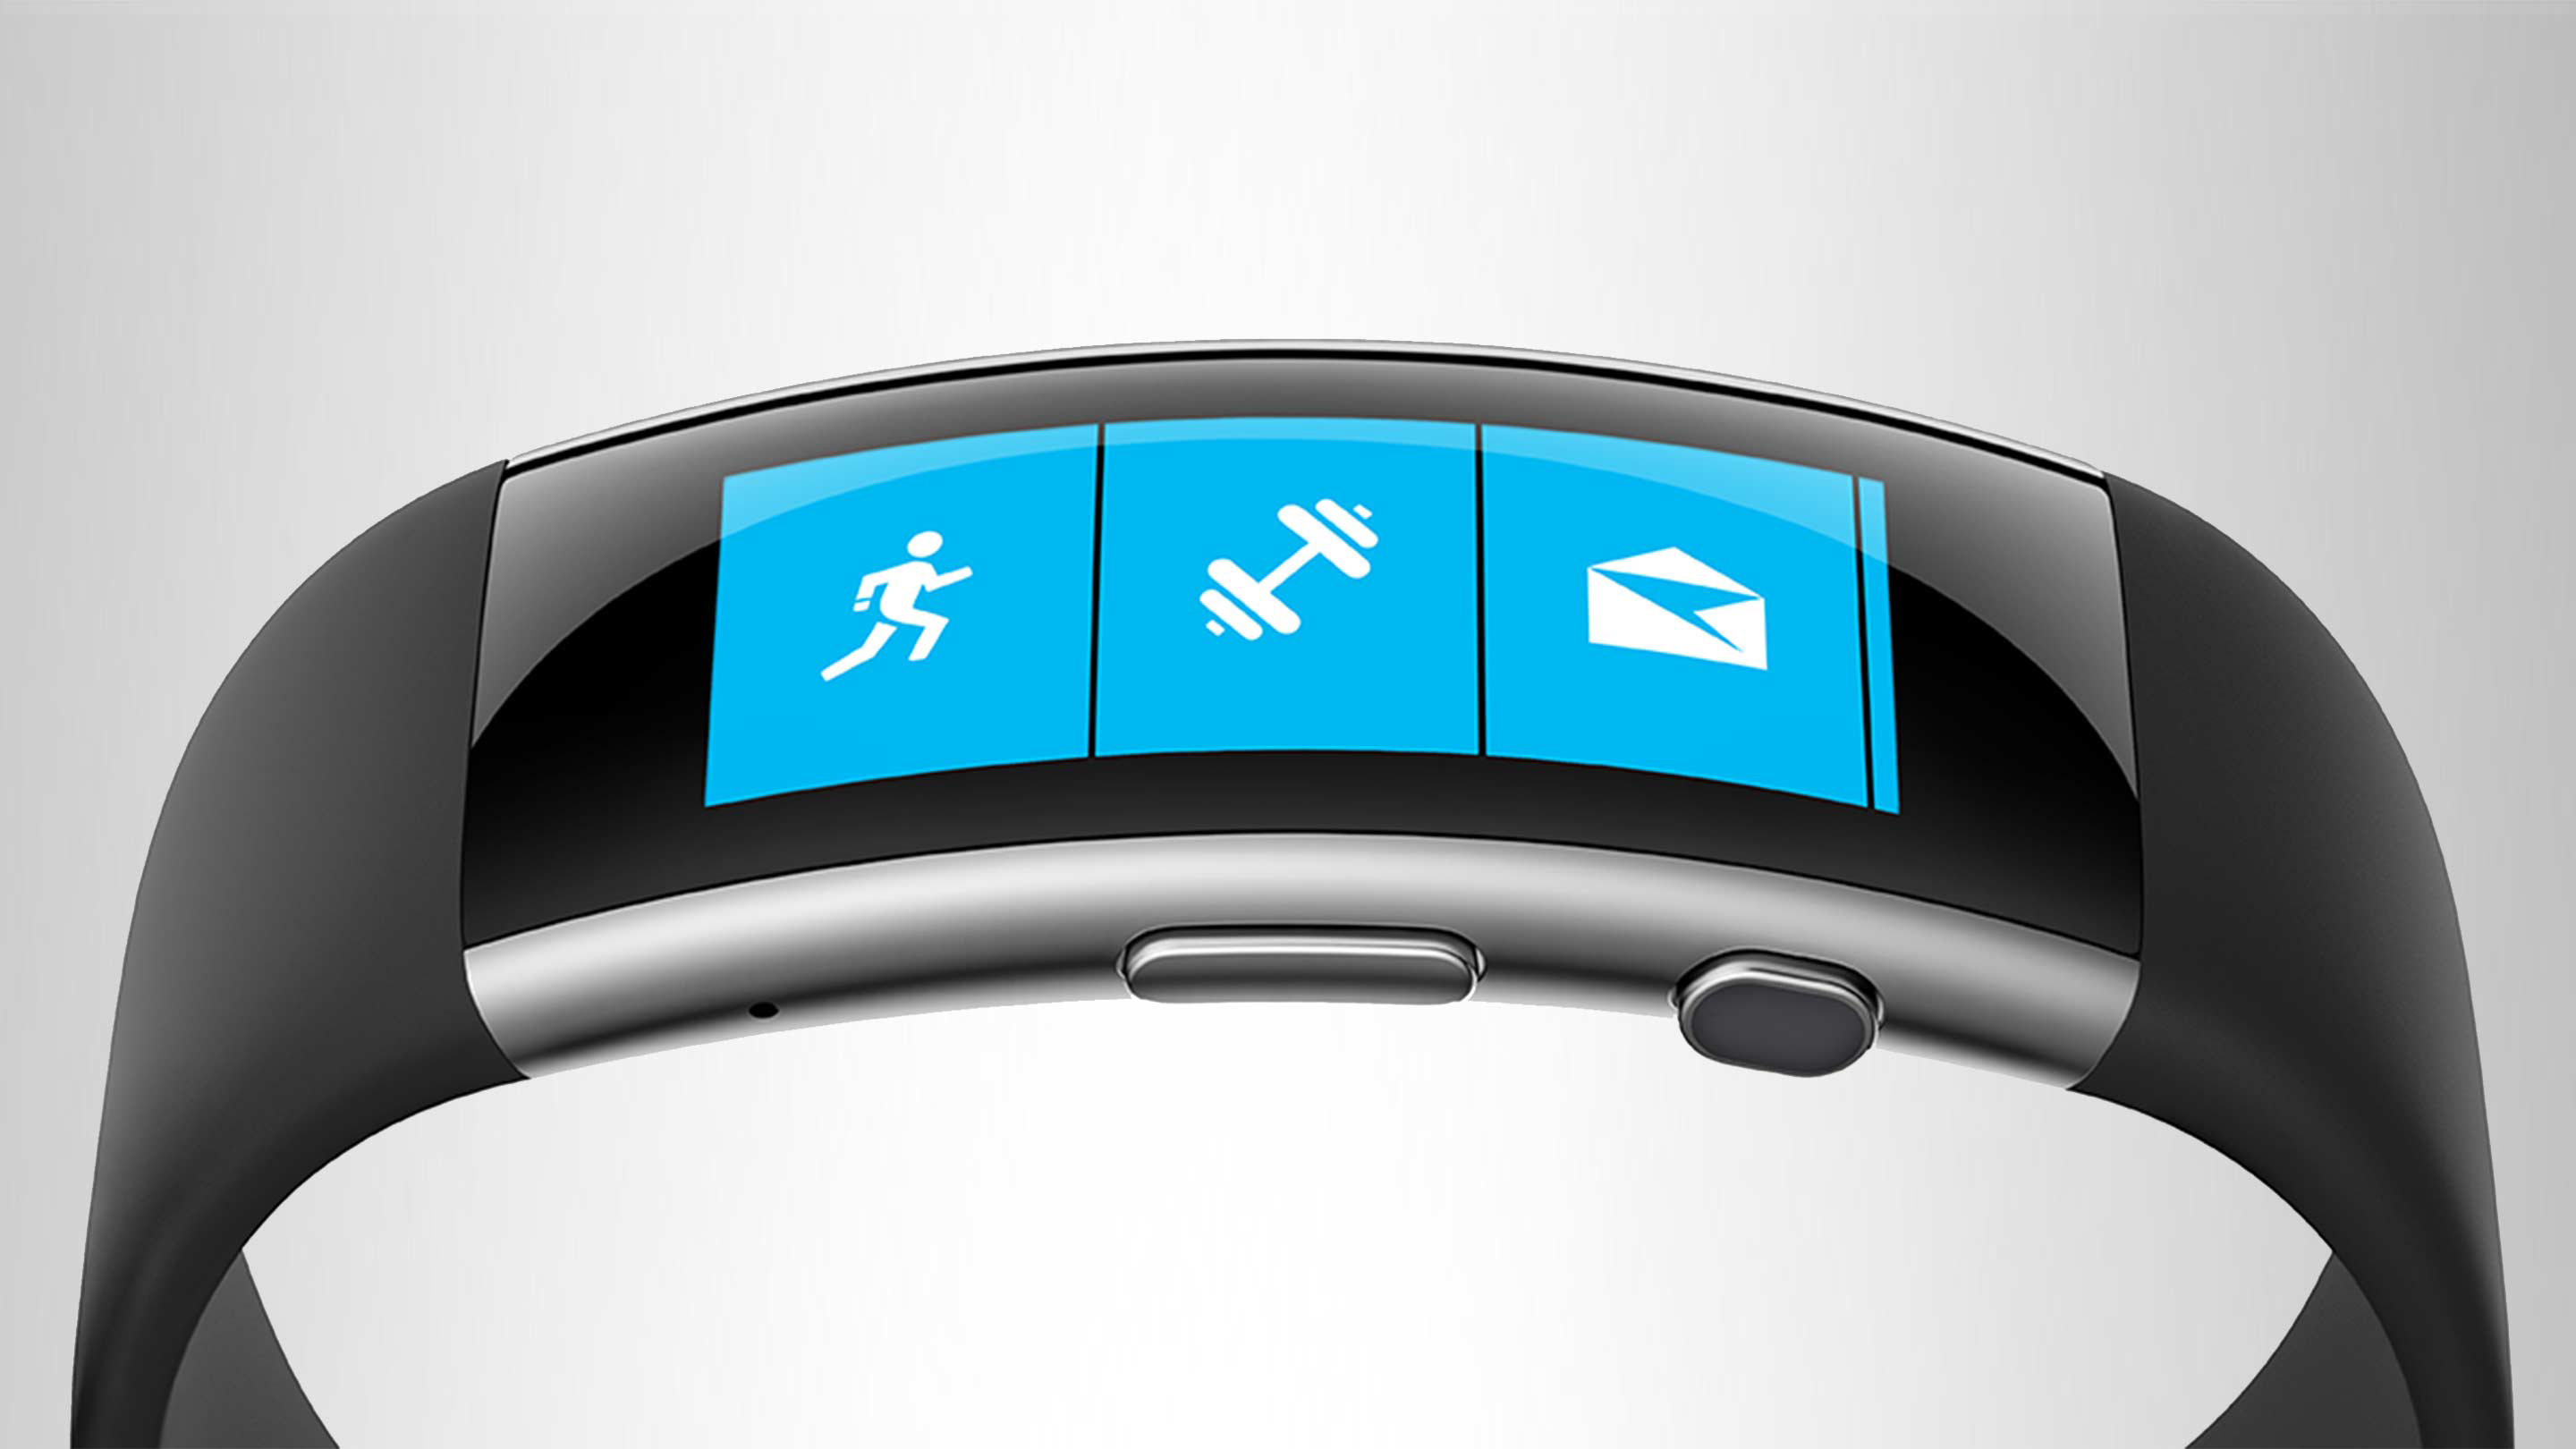 Microsoft really wants Apple Watch users to trade in their device for a Band 2